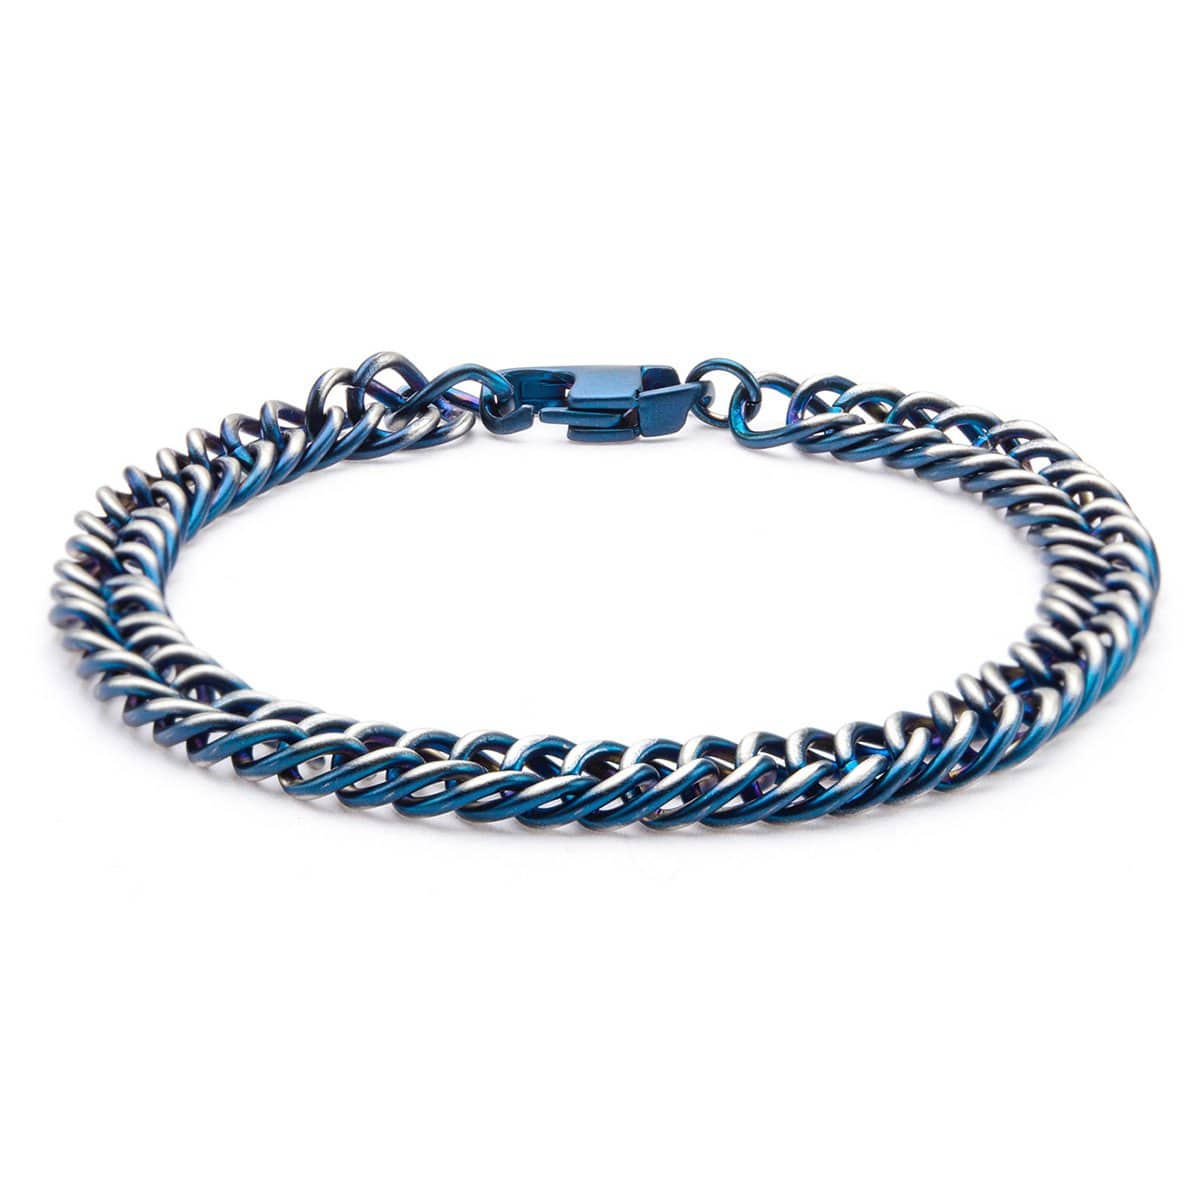 Blue Stainless Steel Denim Fade Curb Chain Bracelet